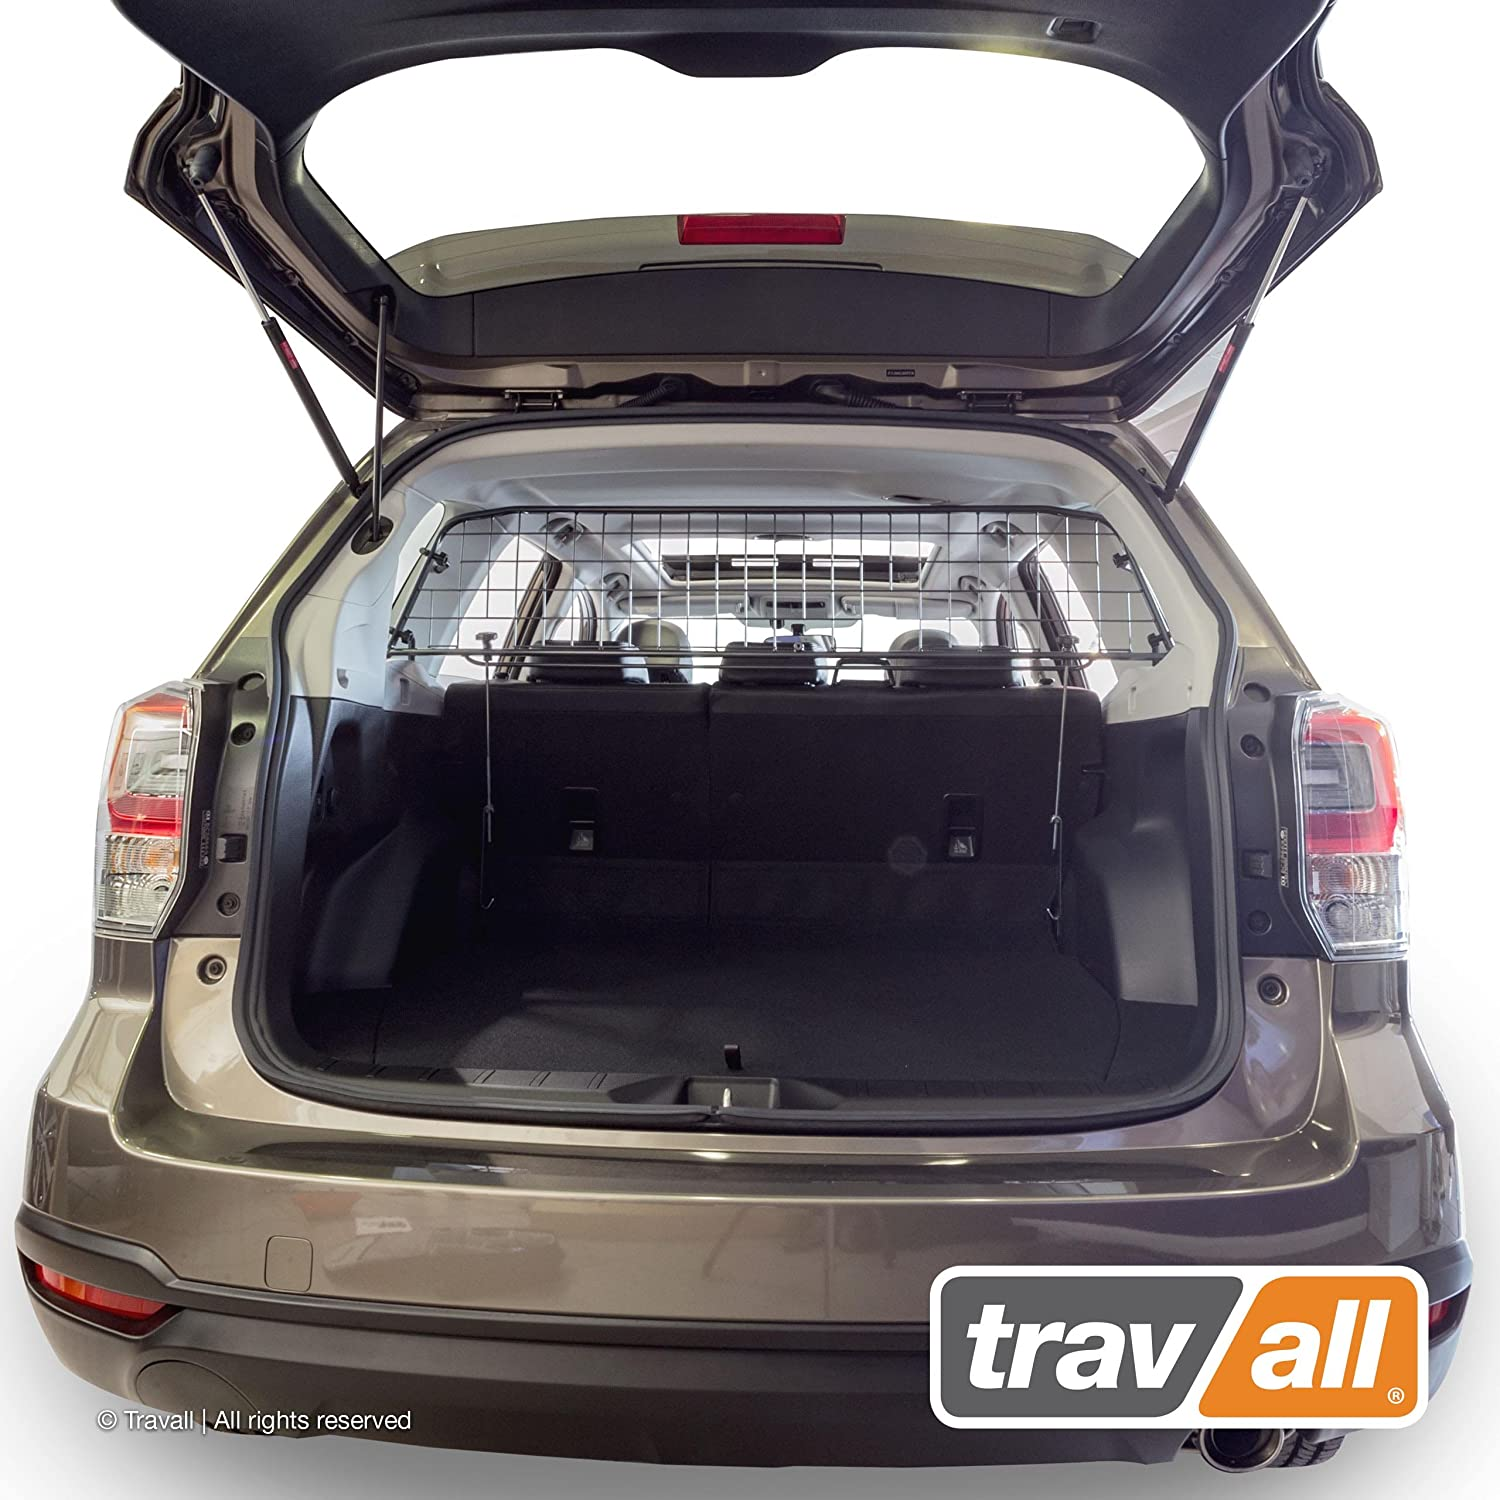 Travall Guard TDG1457 Vehicle Specific Dog Guard Luggage